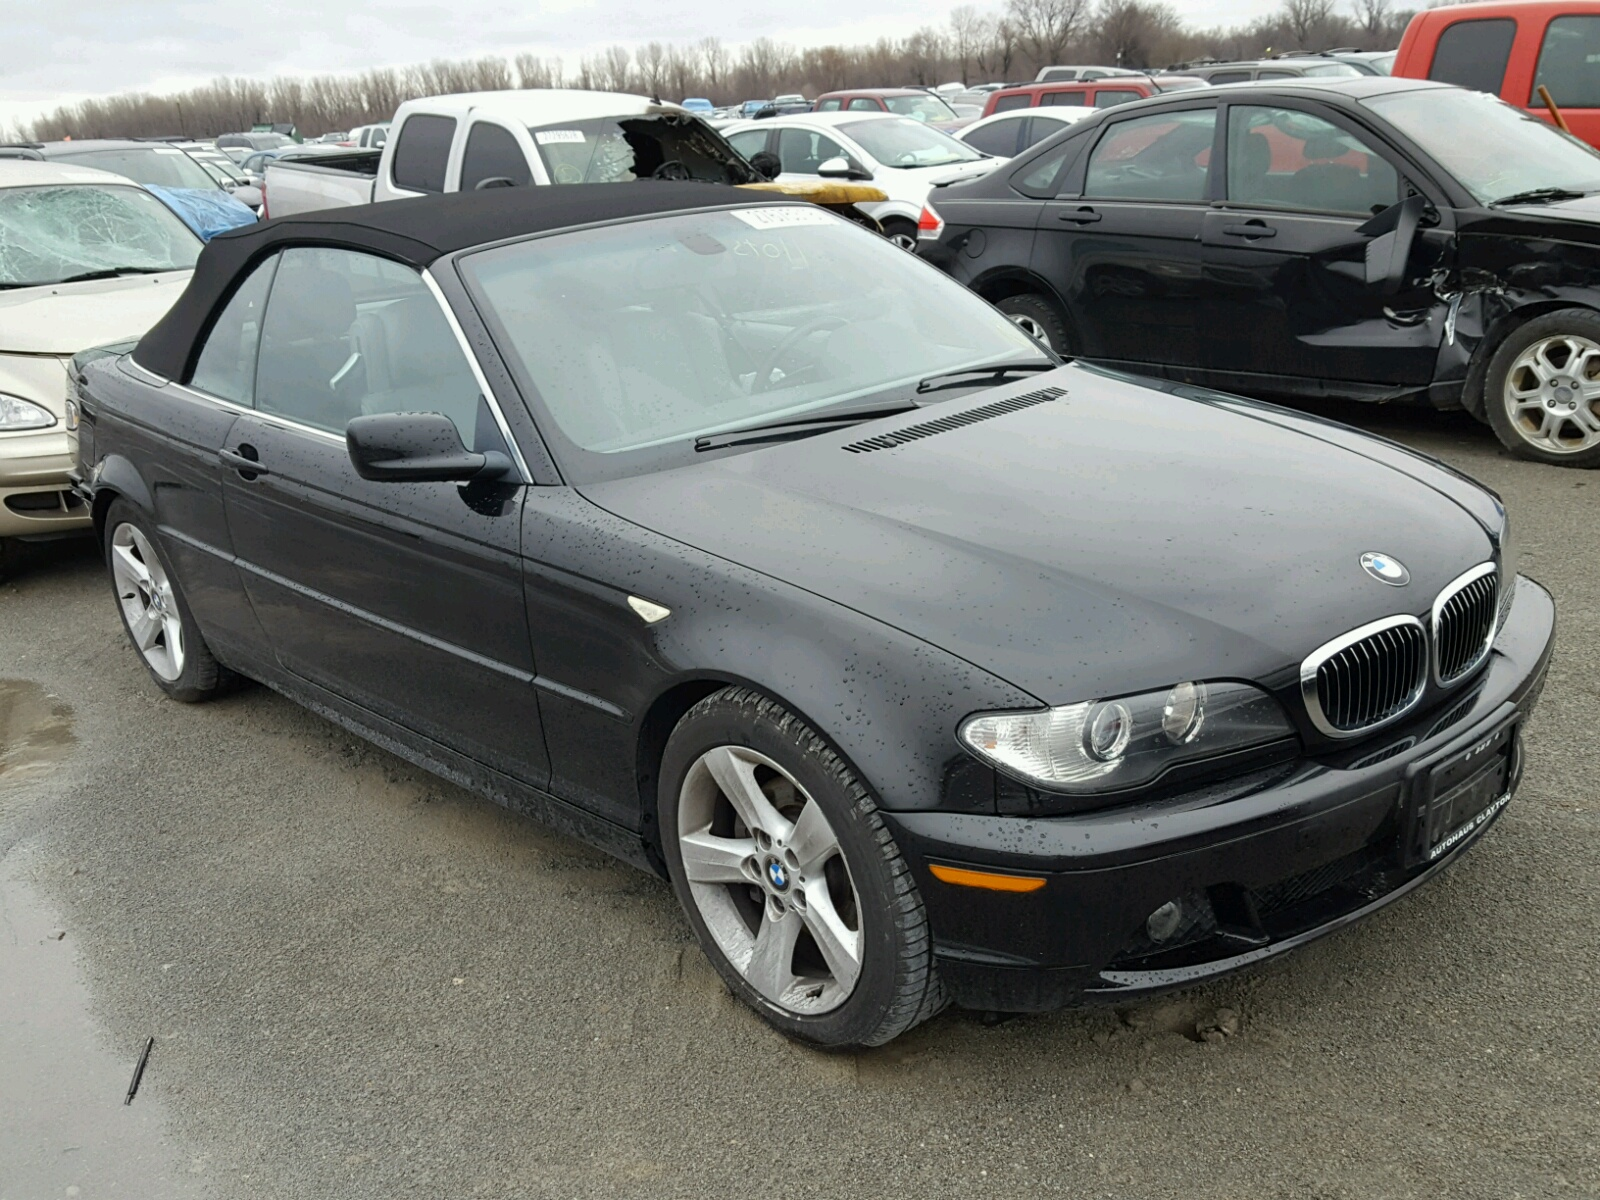 Auto Auction Ended On VIN WBAACDF BMW I In FL - 2004 bmw 328i